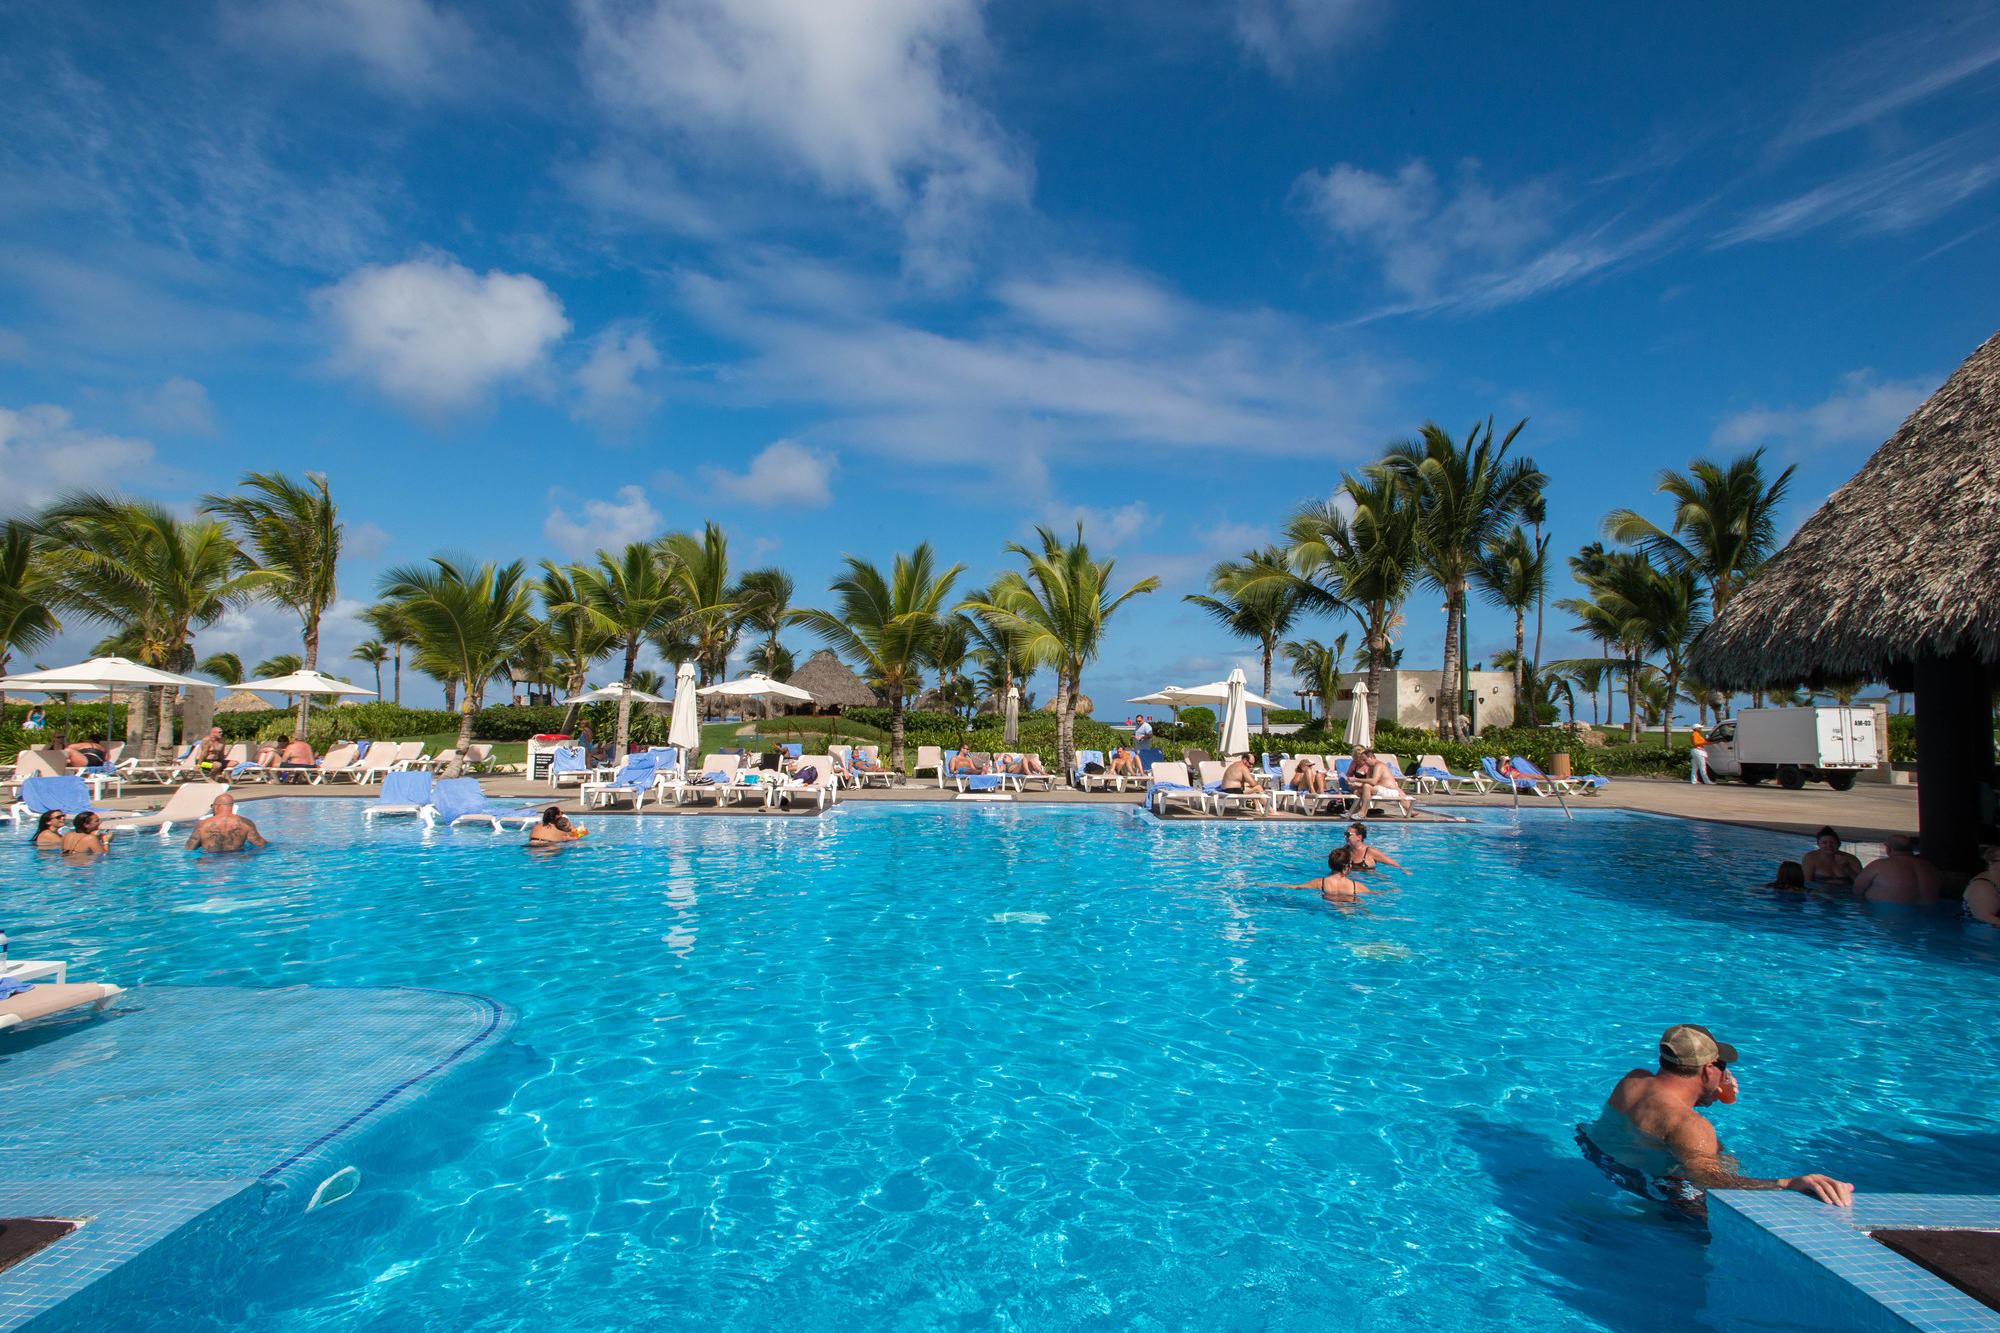 The Guitar Pool at the Hard Rock Hotel & Casino Punta Cana